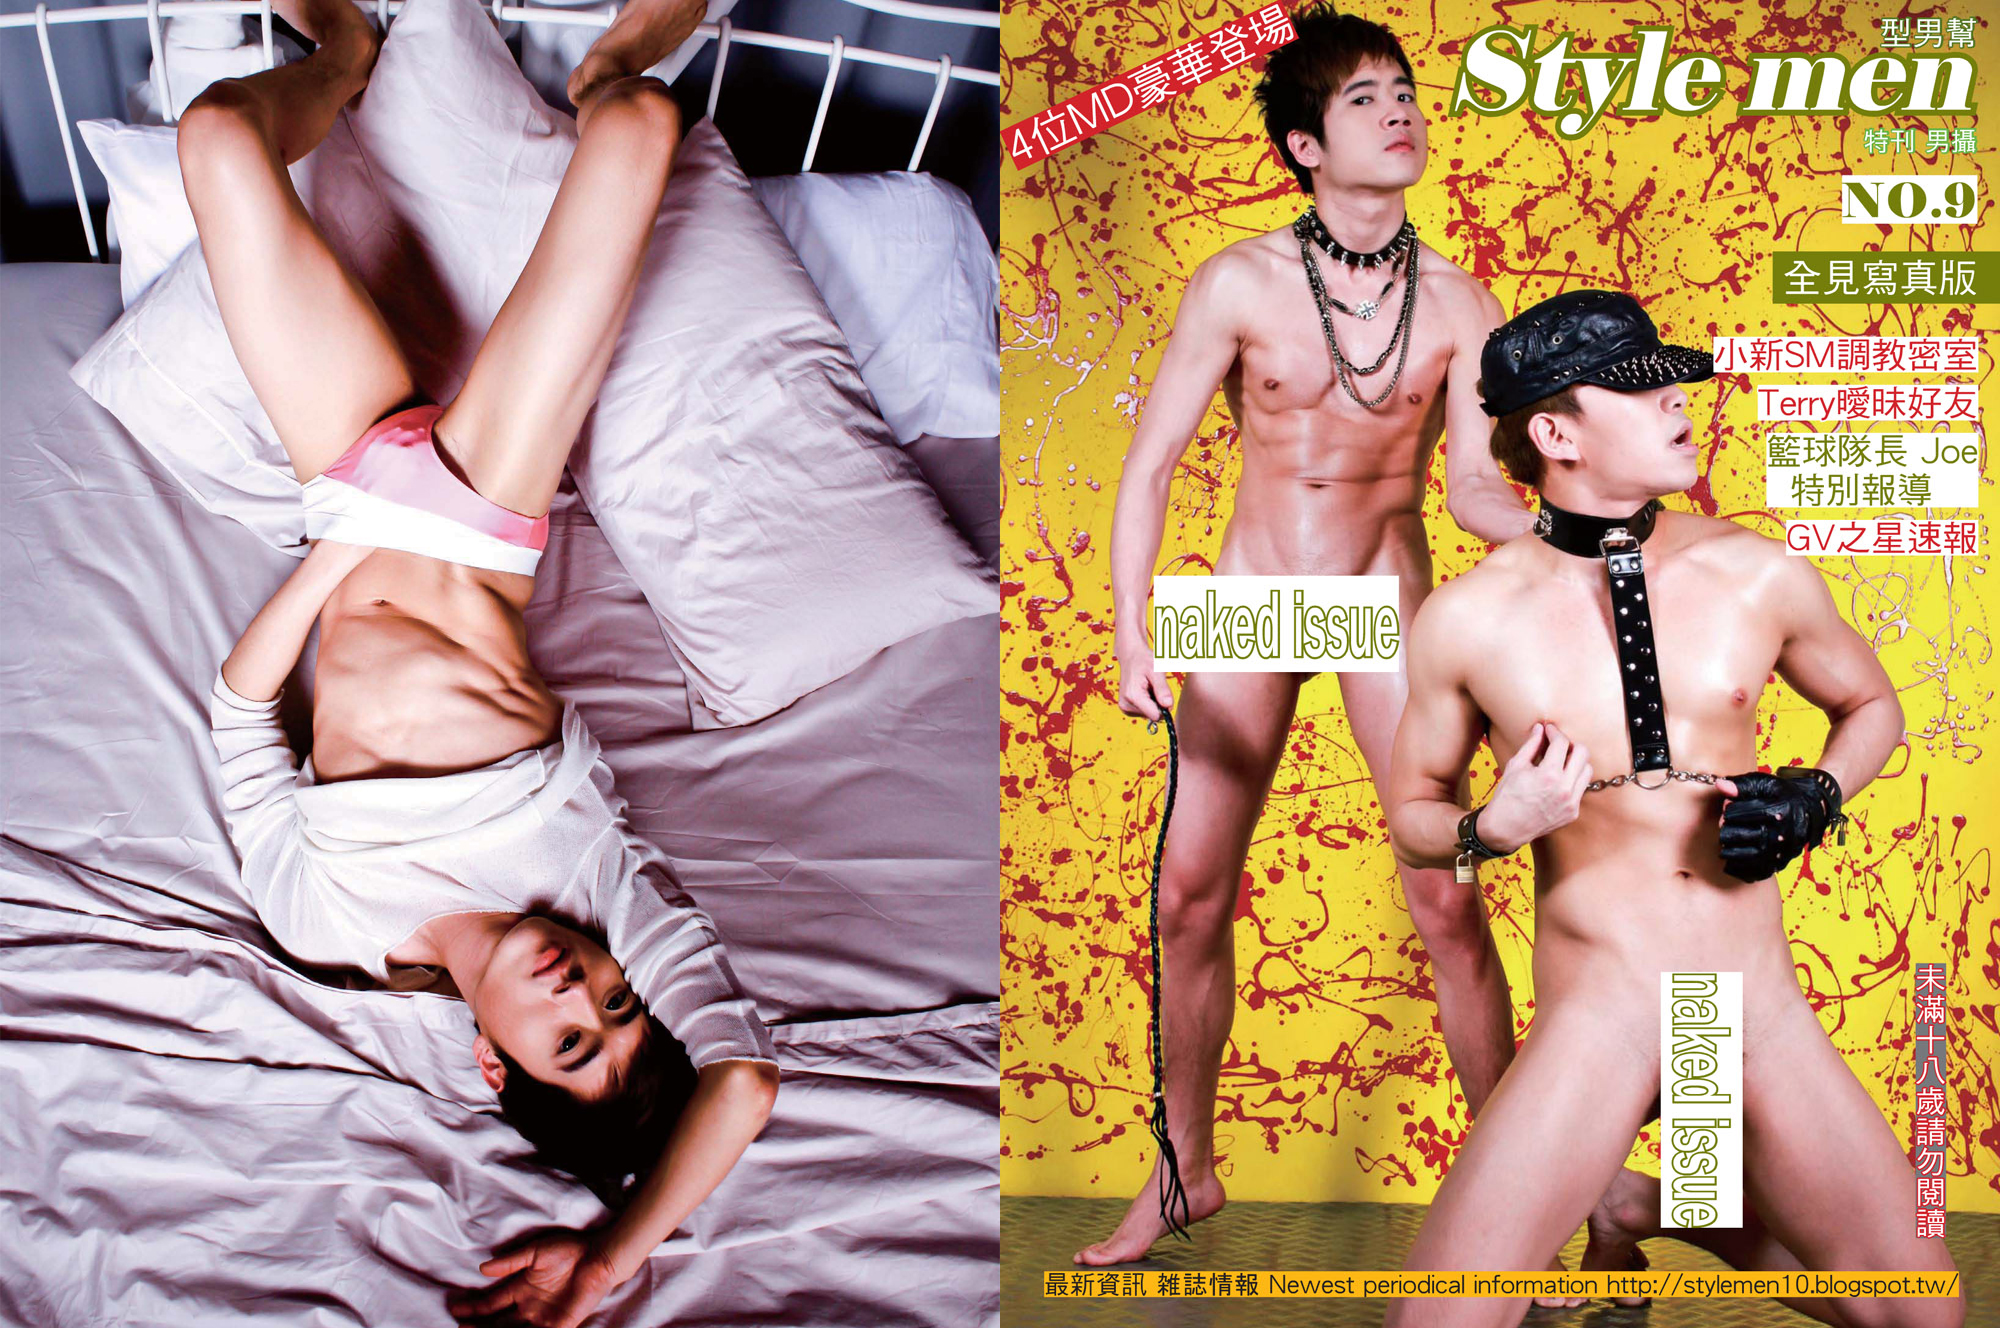 [PHOTO SET] STYLE MEN 09